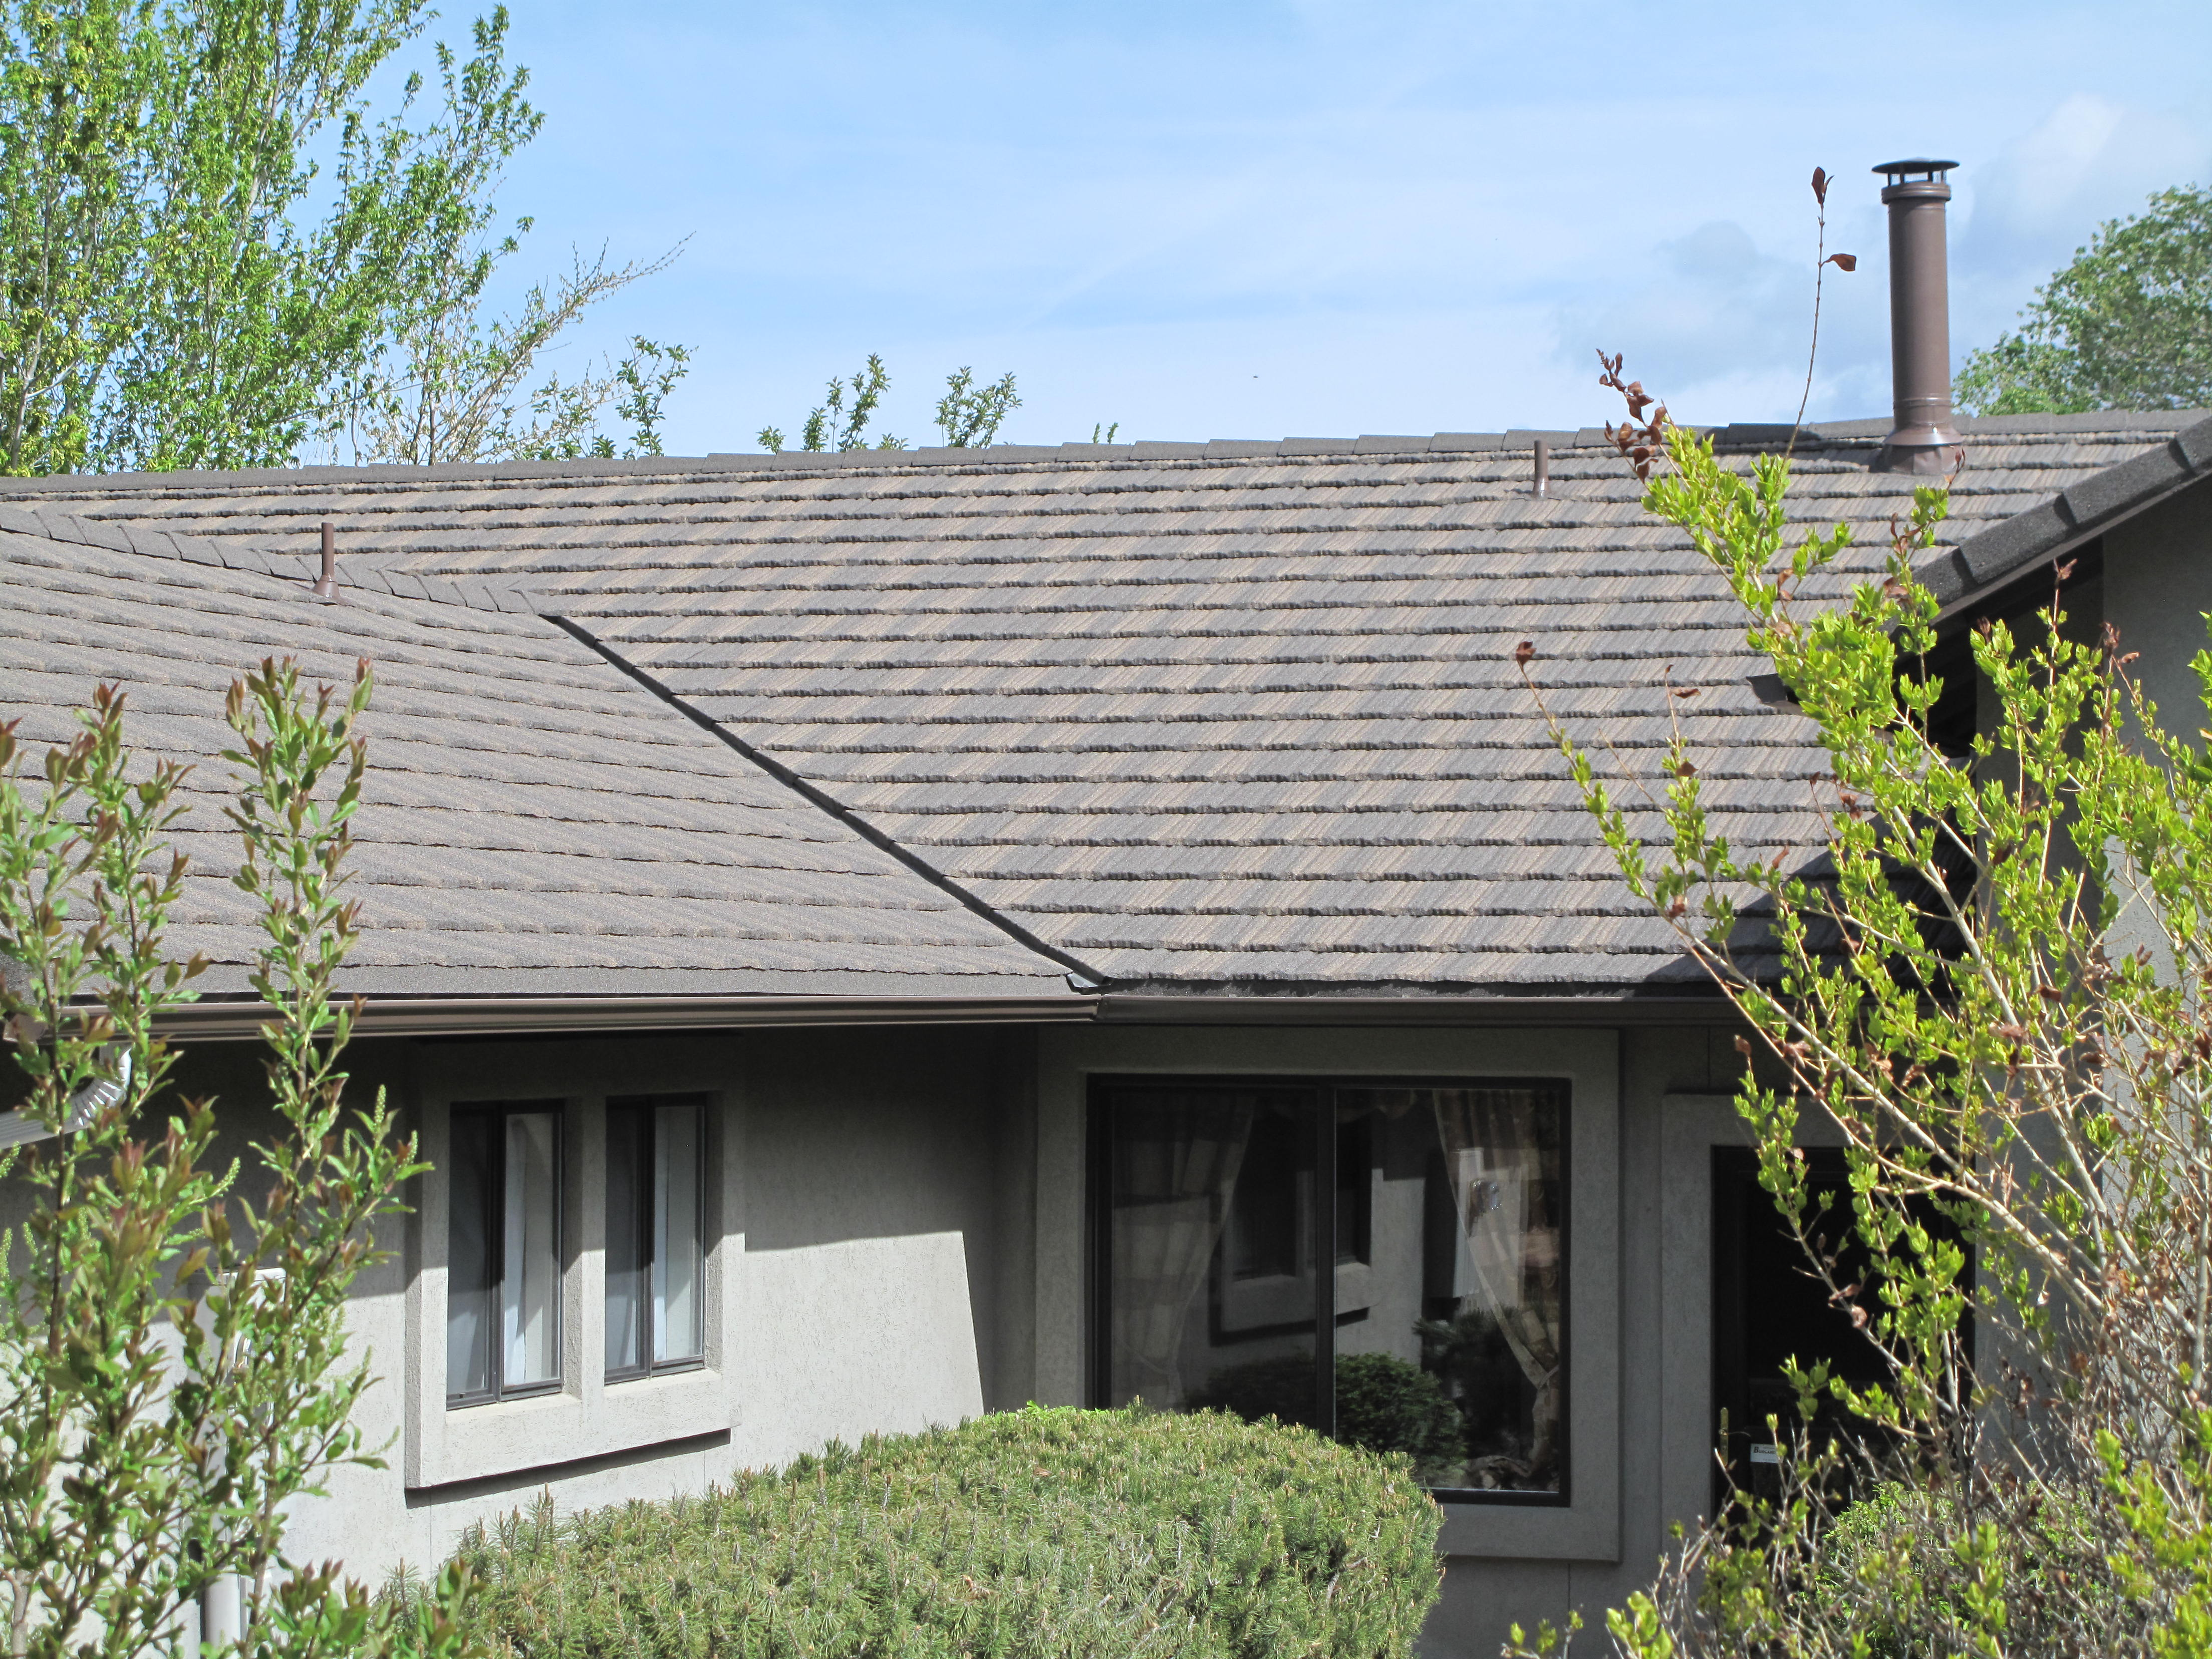 Tahoe City Roofing Has The Experience That You Can Trust